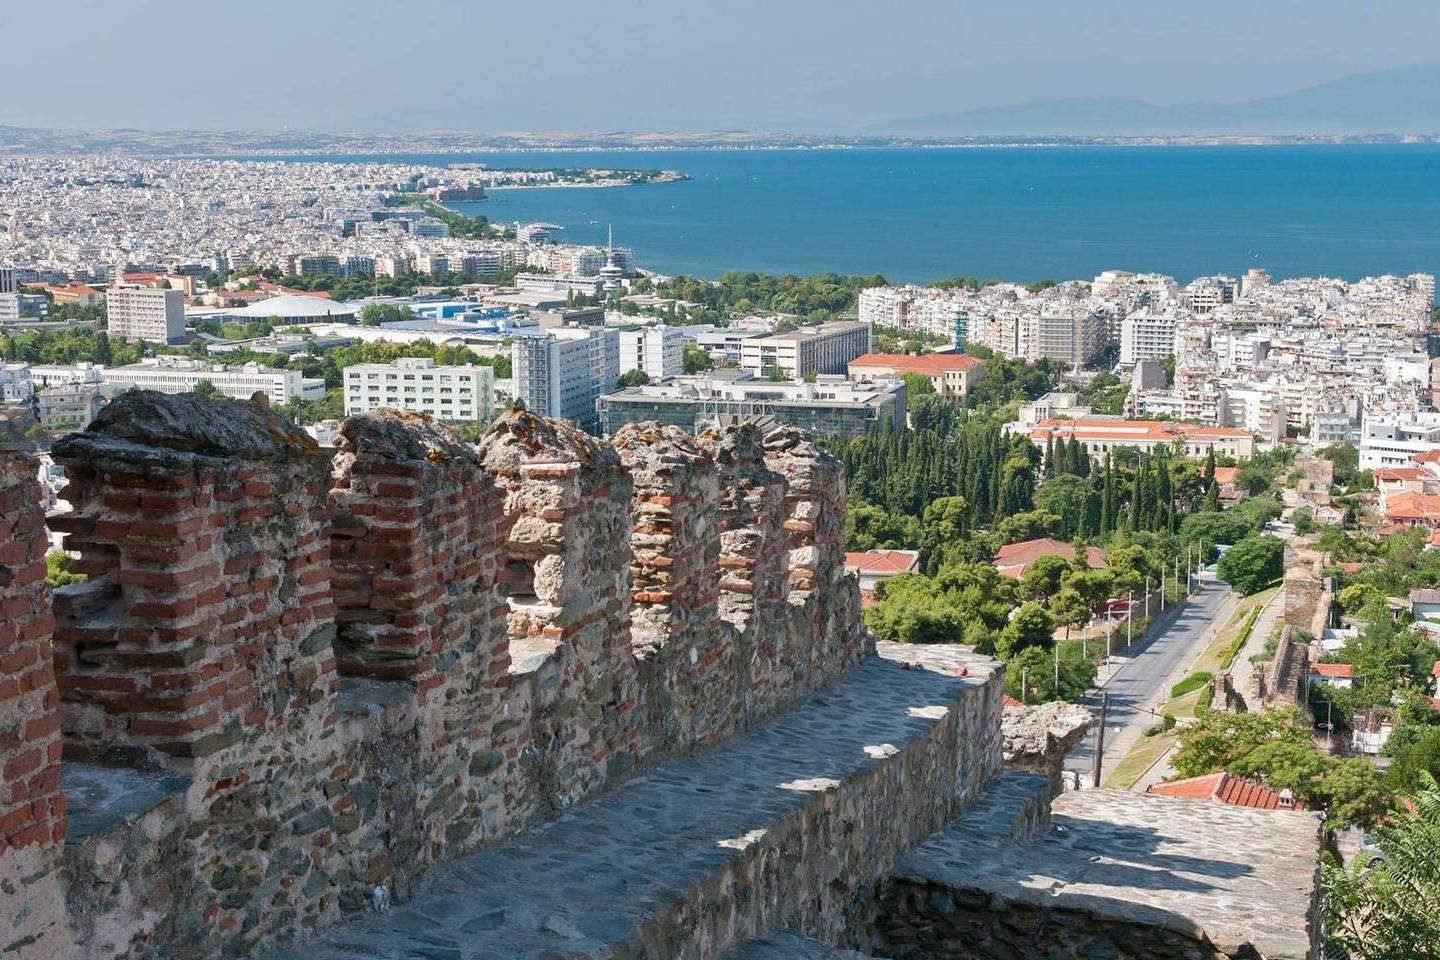 Alluring 7-day grand tour to Peloponnese & northern Greece